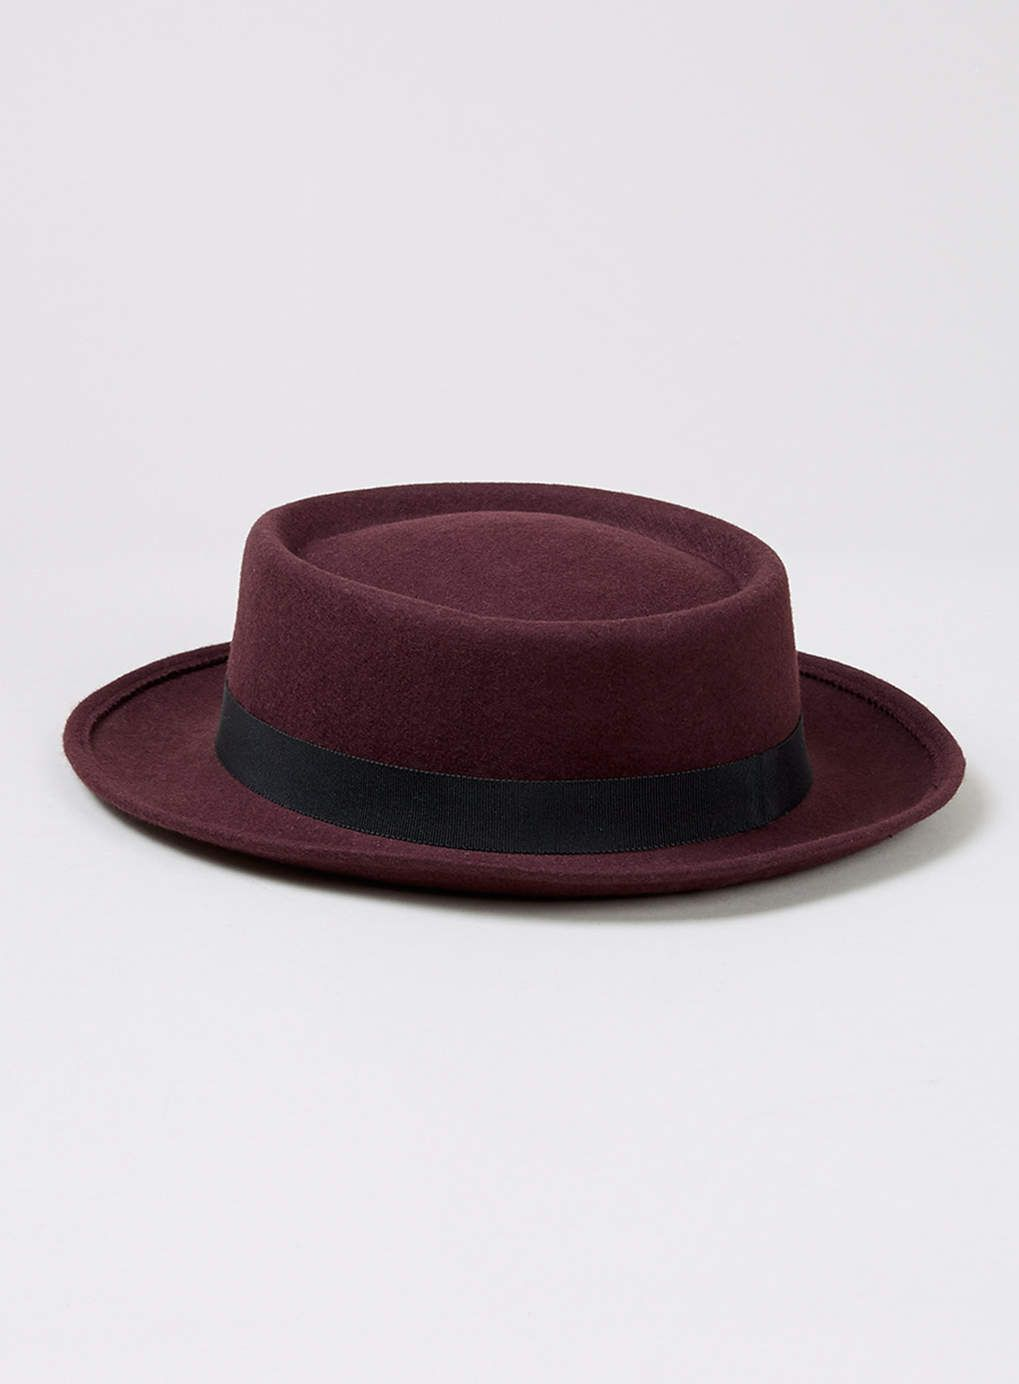 TOPMAN BURGUNDY WOOL PORK PIE HAT  0d03236ba38